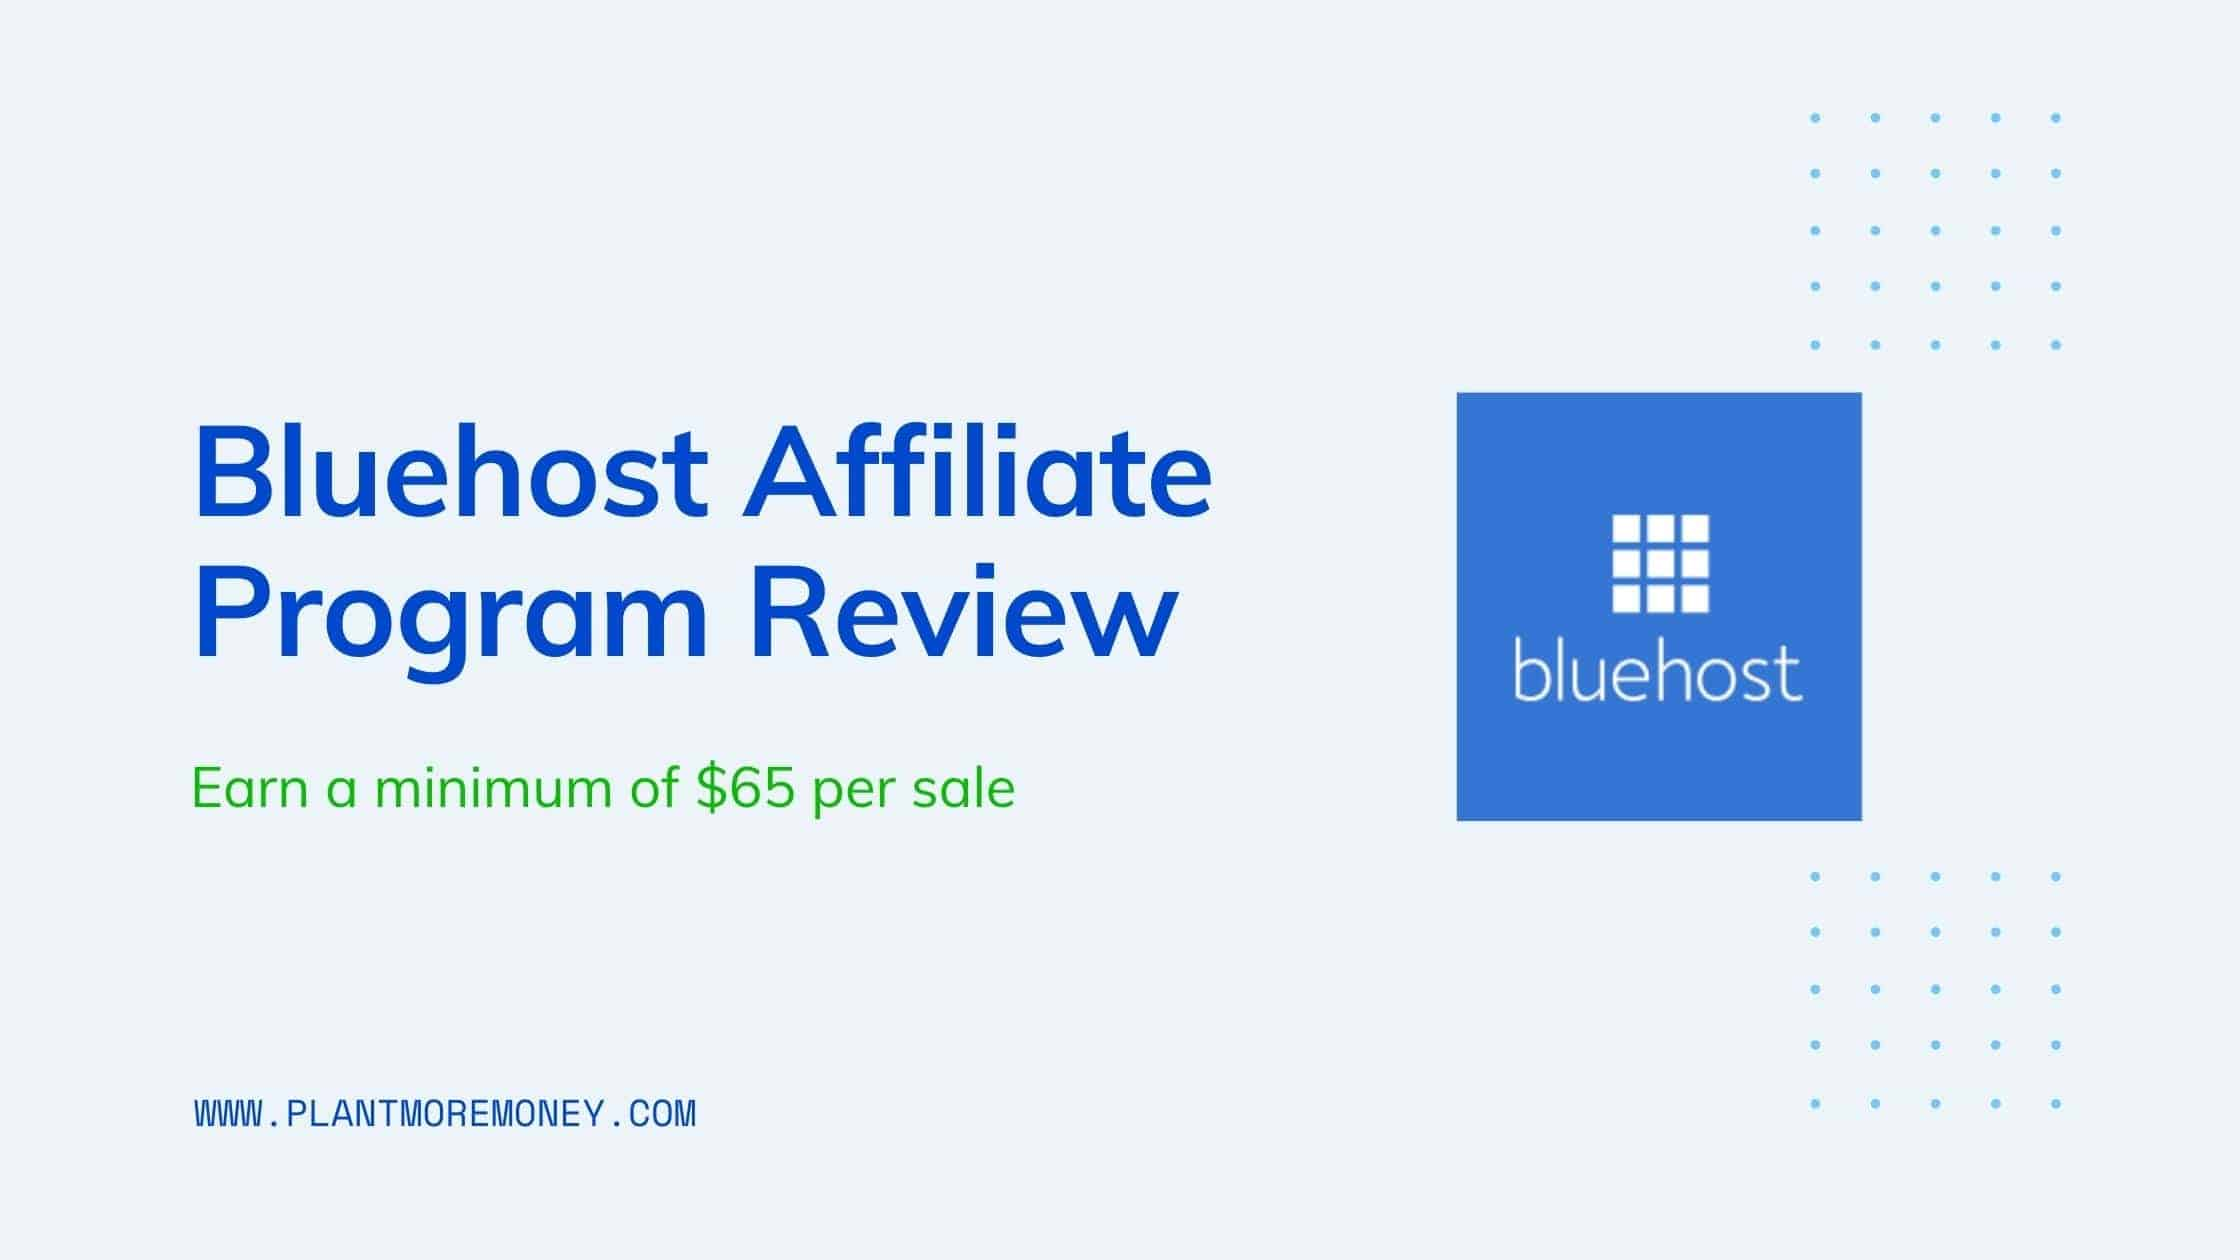 Bluehost affiliate program Review: Earn Minimum $65 Per Sale